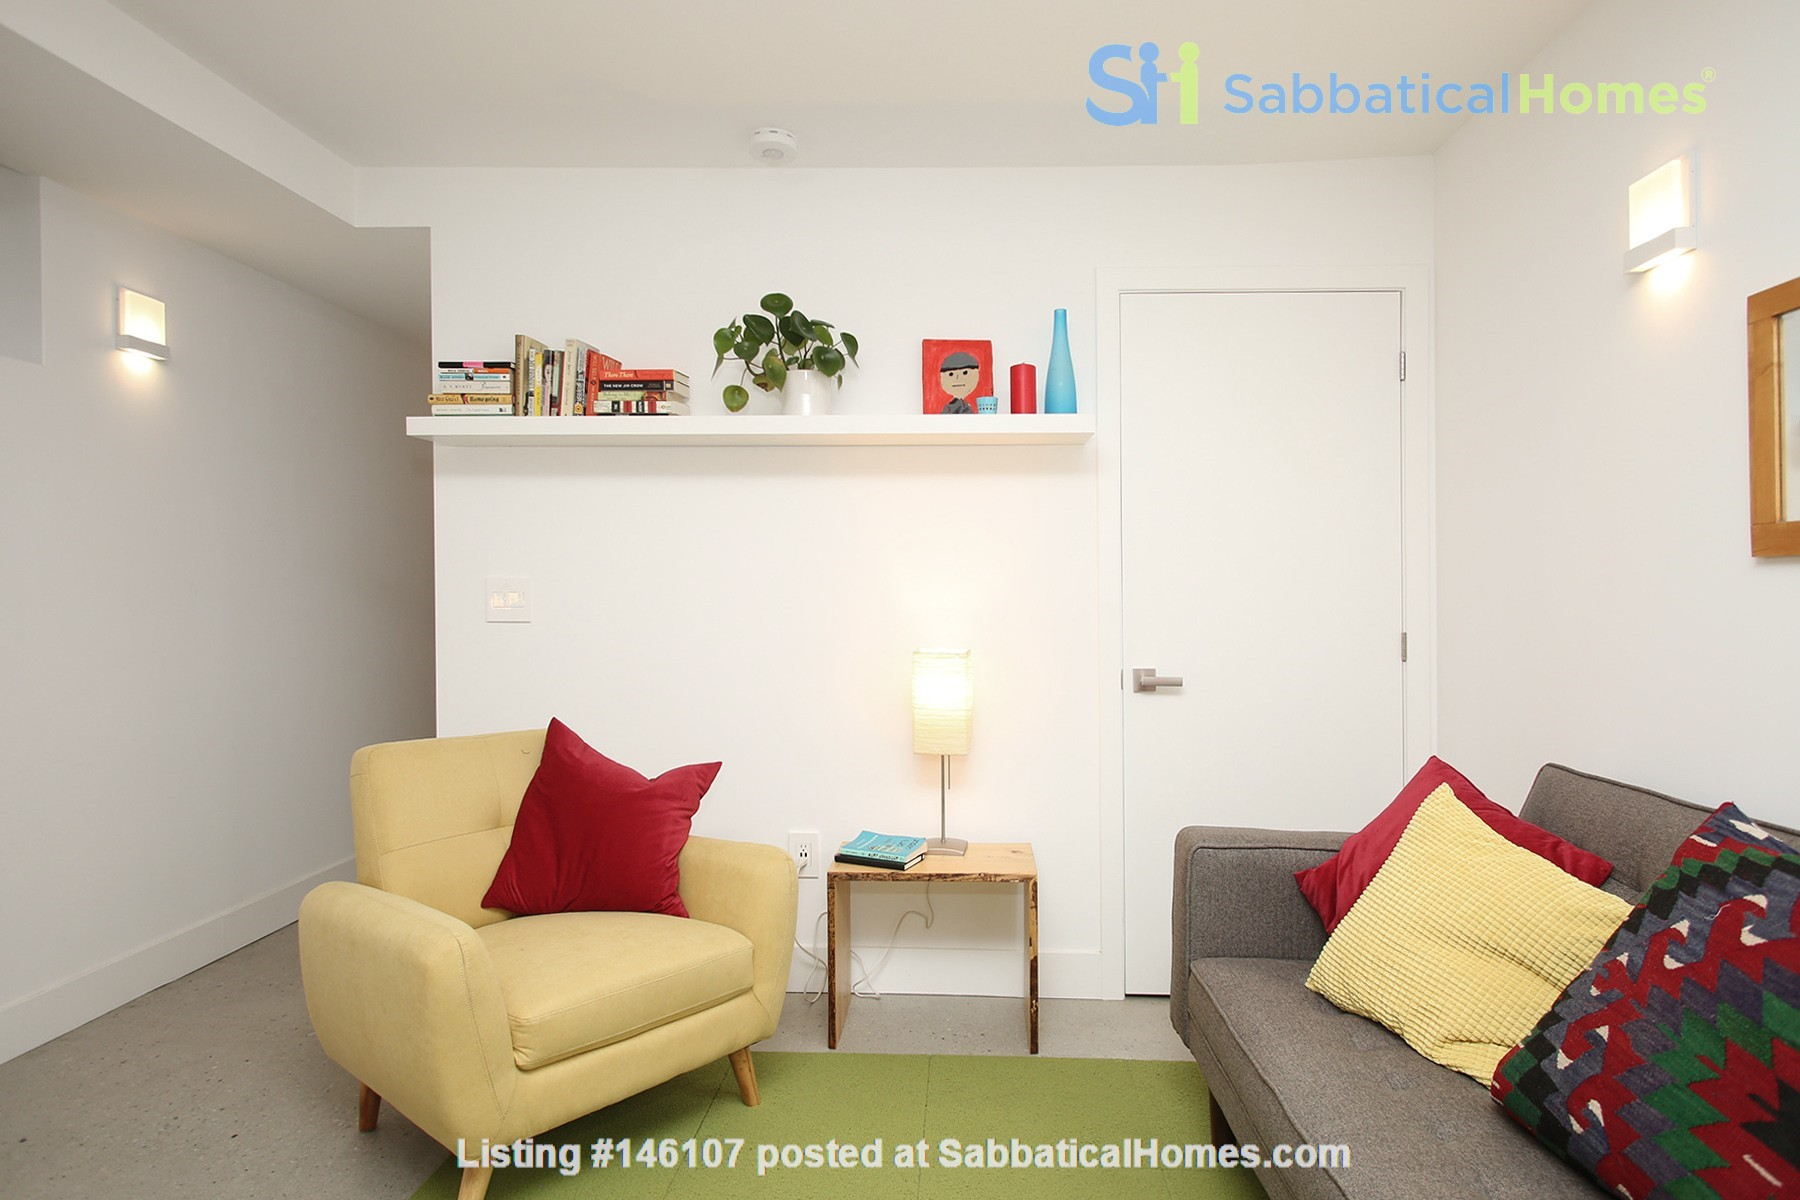 Modern designer space perfect for relaxing and working in! Home Rental in Toronto 2